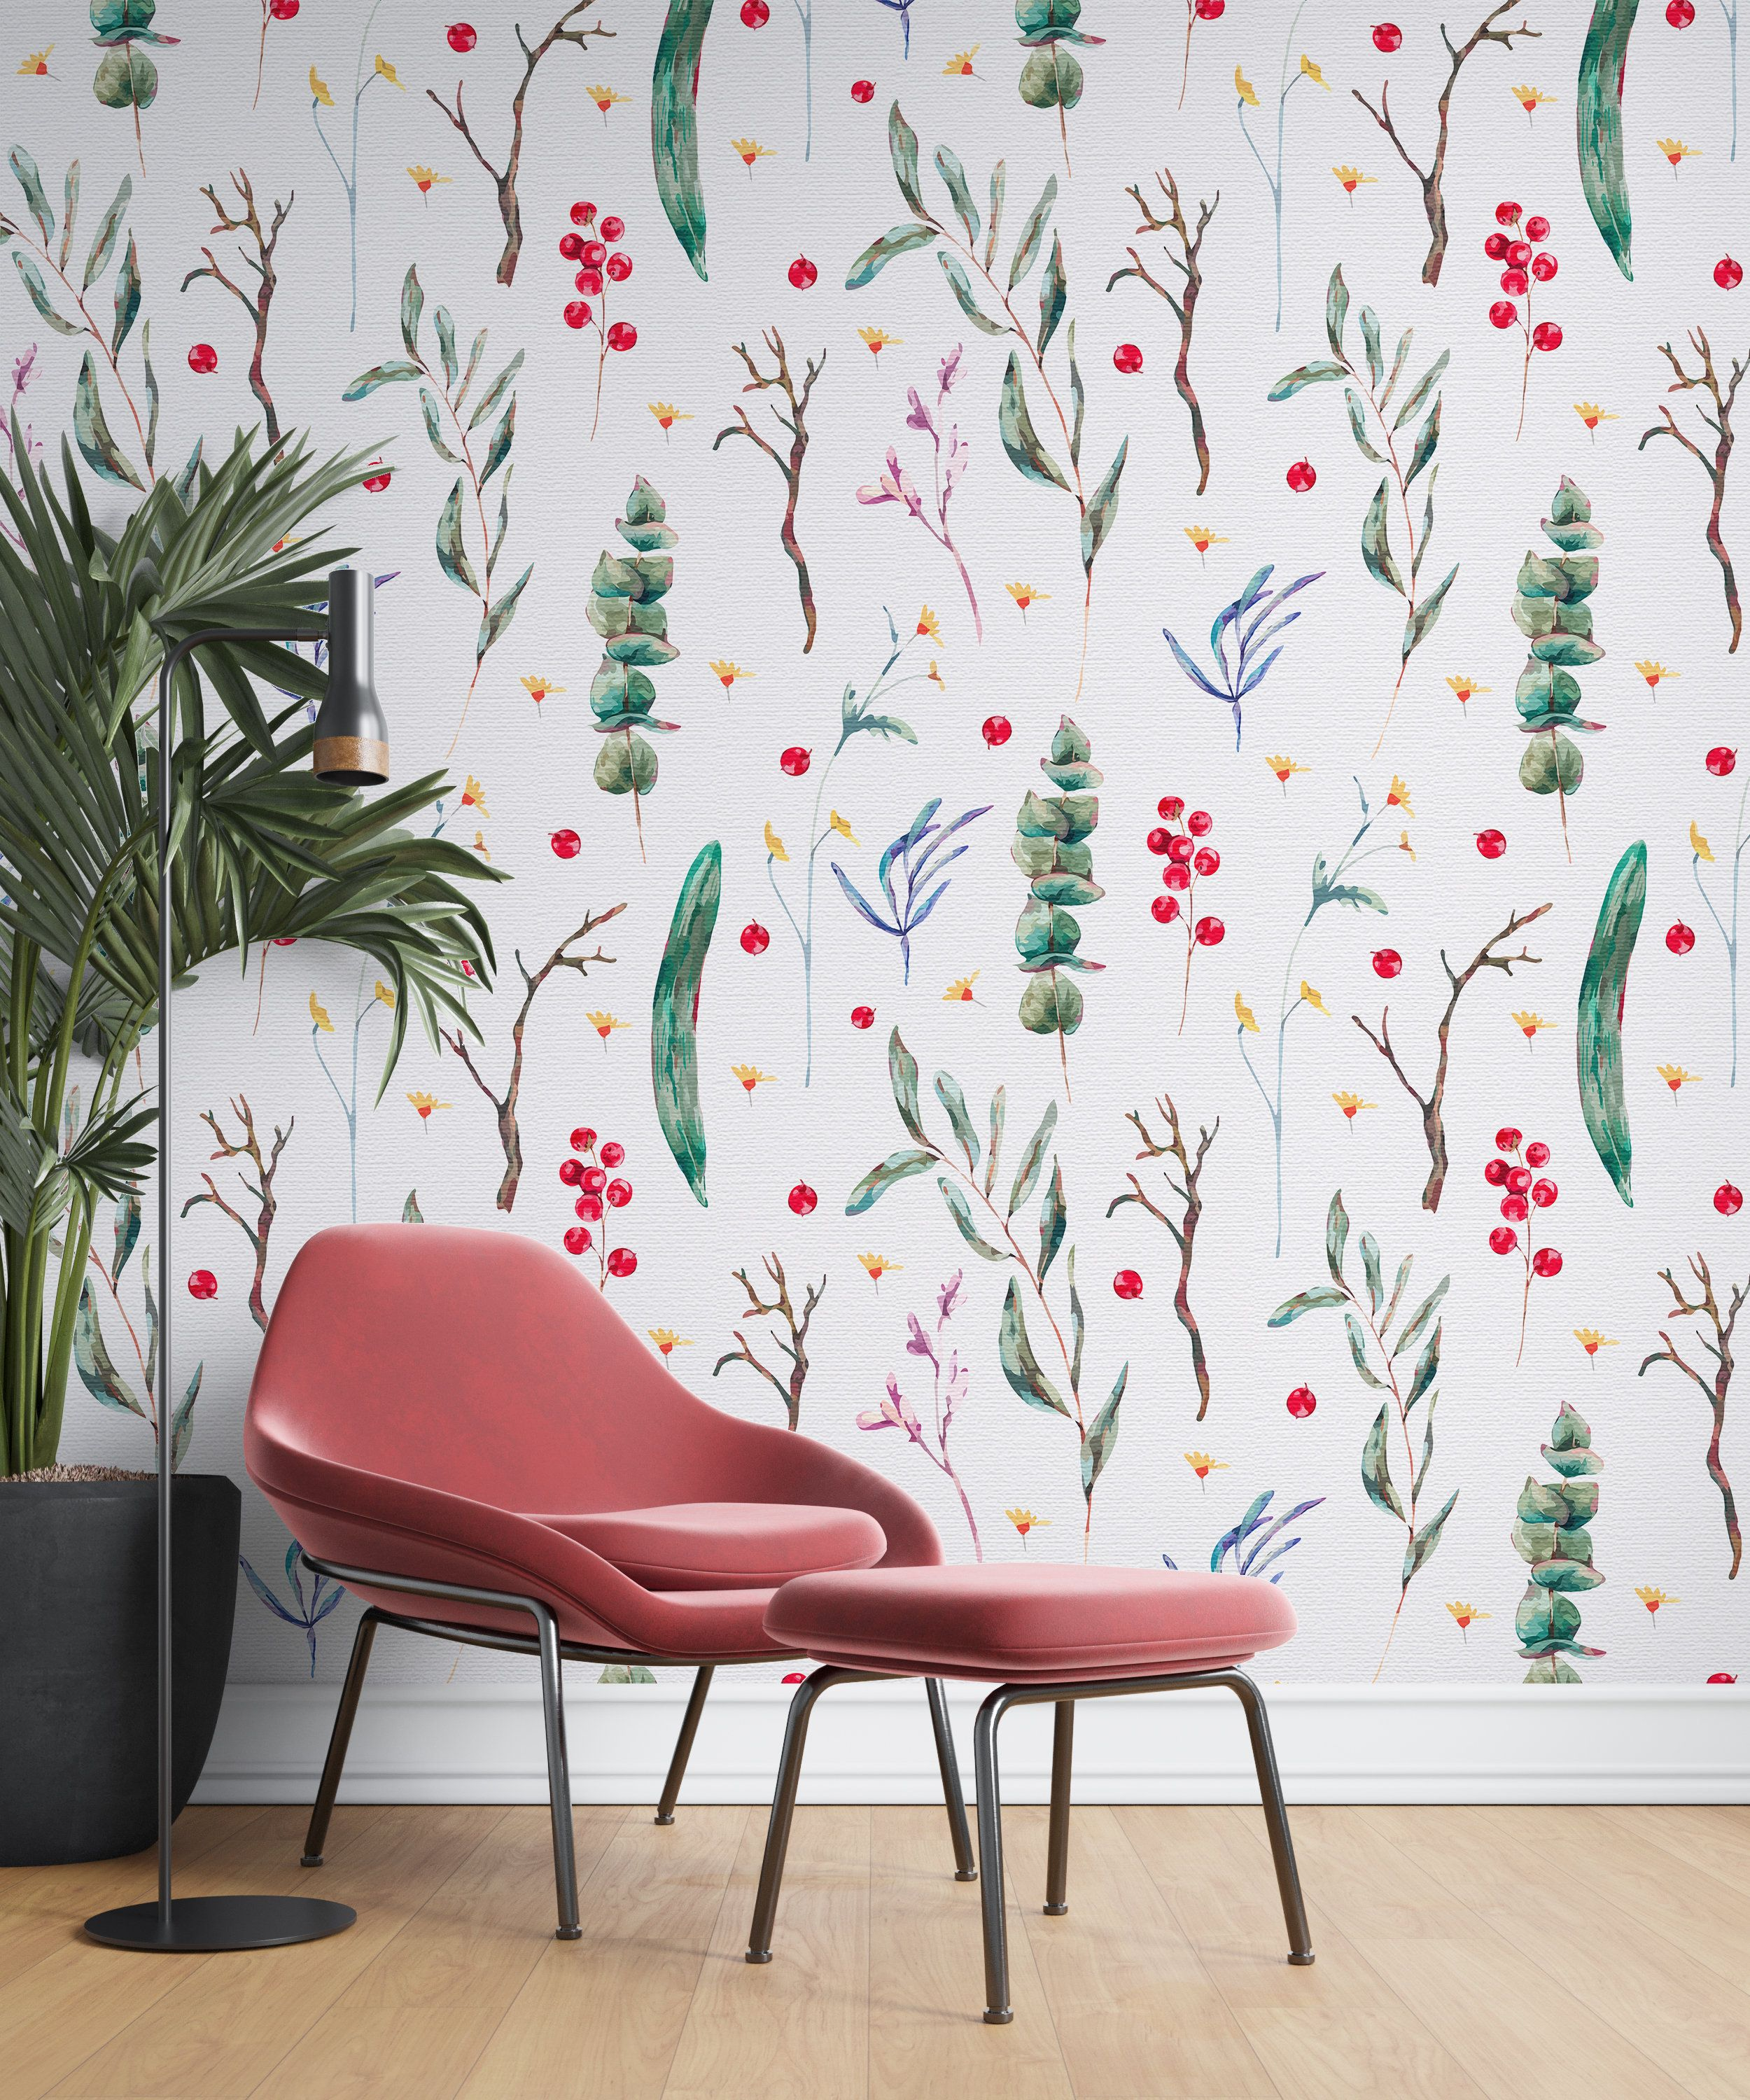 Removable Wallpaper Vintage Pastel Floral Peel And Stick Wallpaper Wall Mural Reusable Wall Art Self Adhesive Wallpaper Eco Friendly Wallpapers Vintage Removable Wallpaper Peel And Stick Wallpaper